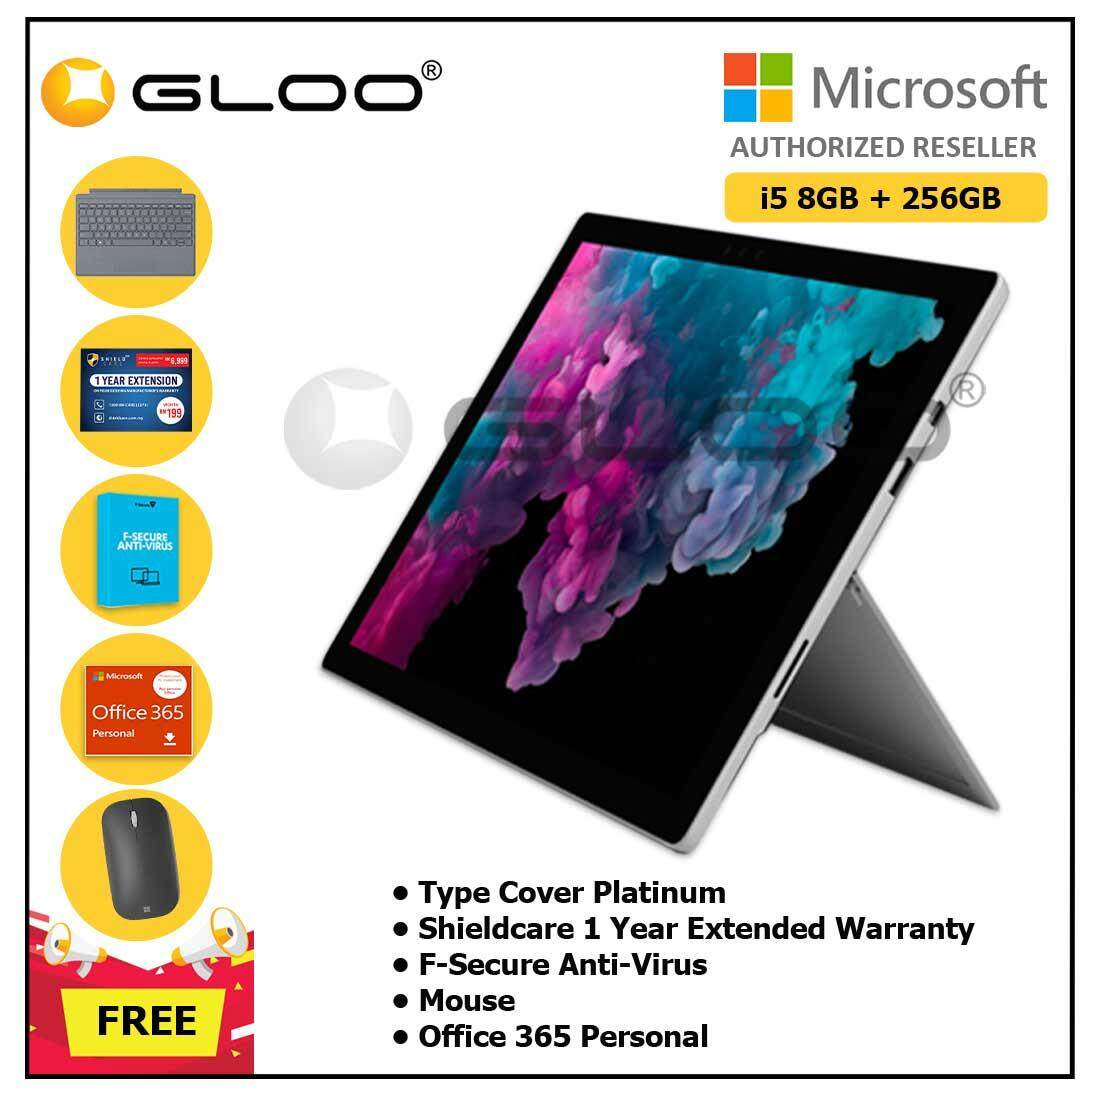 Microsoft Surface Pro 6 Core i5/8GB RAM - 256GB + Type Cover Platinum + Office 365 Personal (ESD) + Shieldcare 1 Year Extended Warranty + F-Secure EndPoint Protection + Mouse